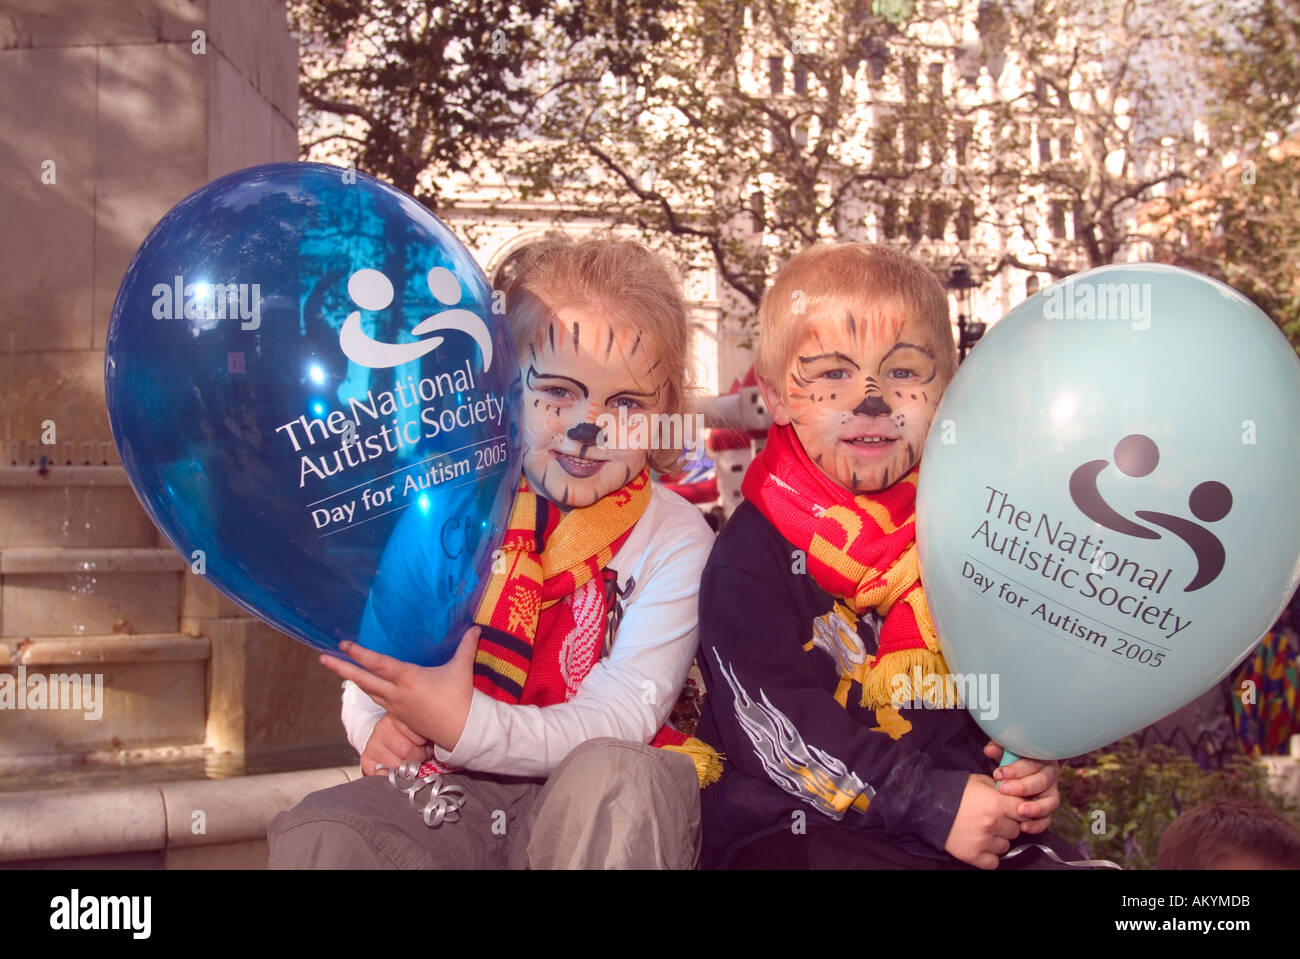 Two youngsters with balloons at a National Autistic Society (NAS) fun day, Leicester Square, London, UK. September 2005. - Stock Image